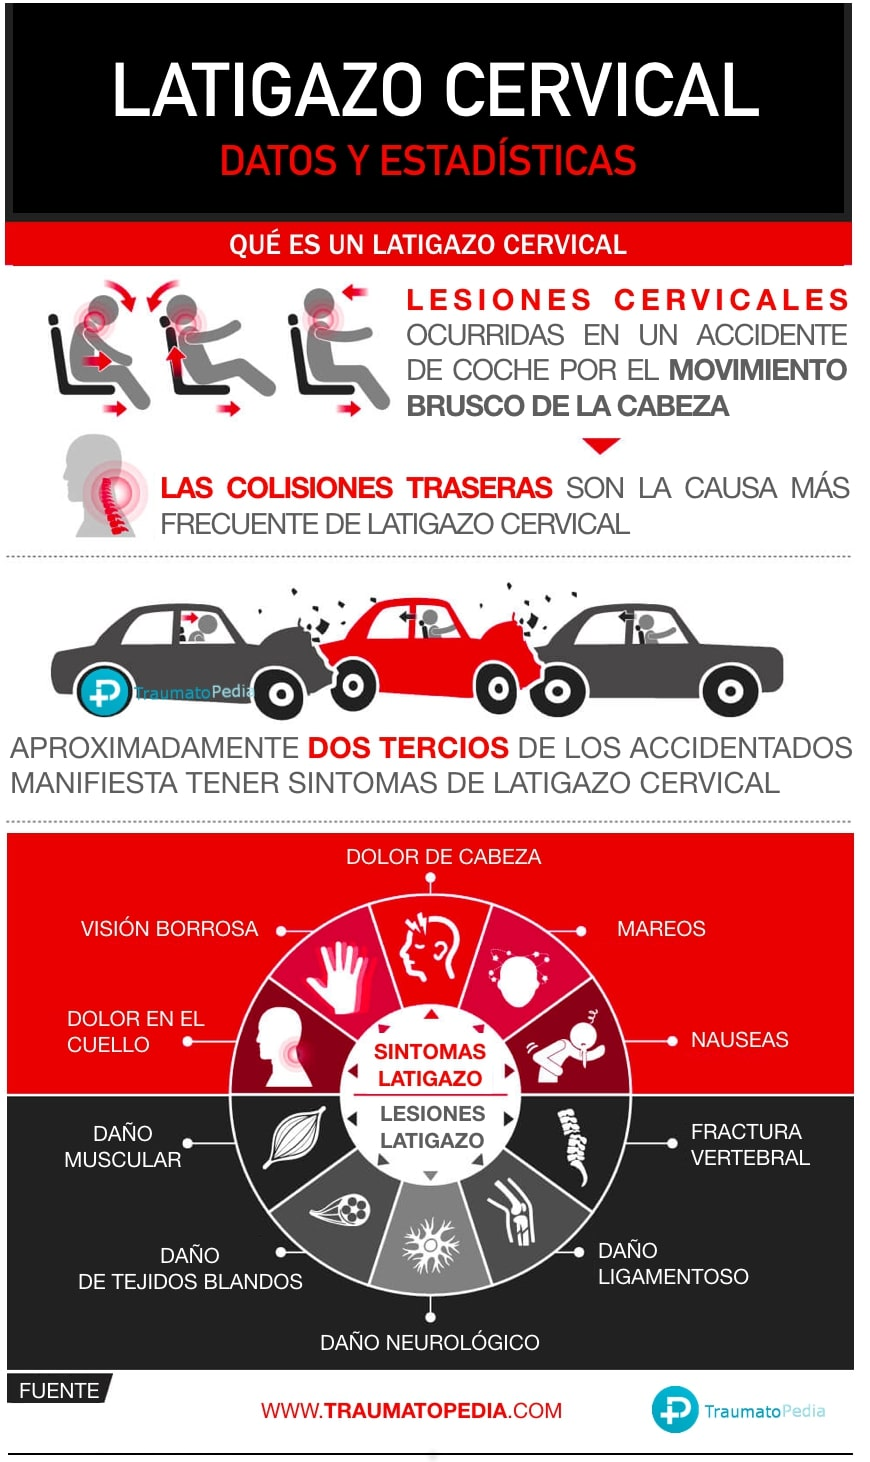 INFOGRAFIA LATIGAZO CERVICAL